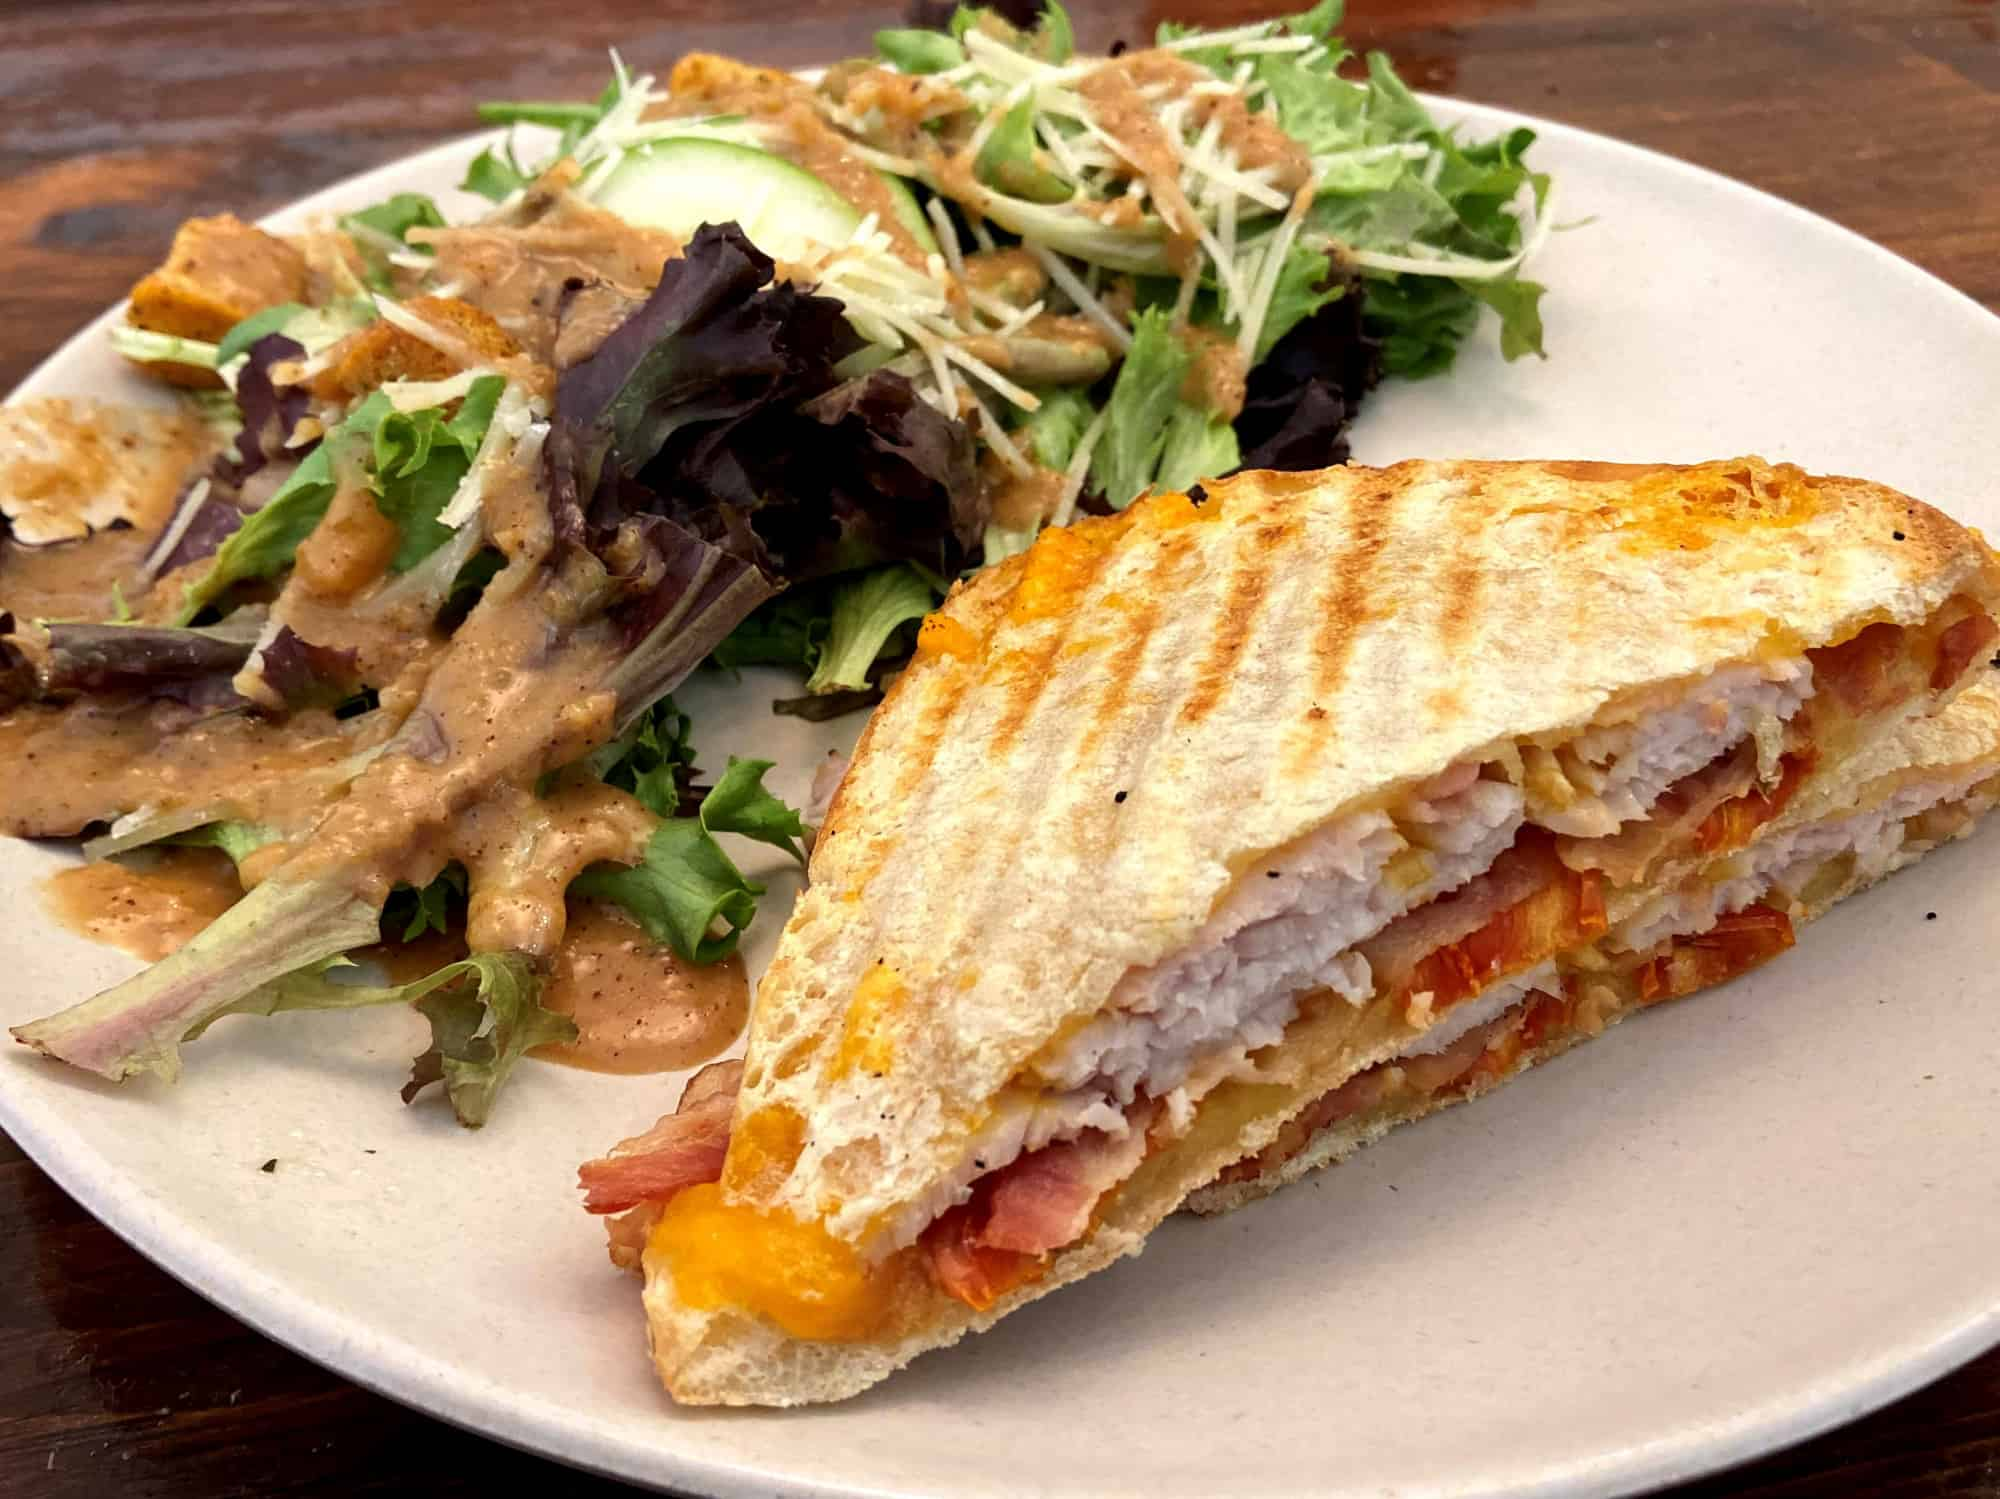 Smoked Turkey Panini at TwentyFive Main